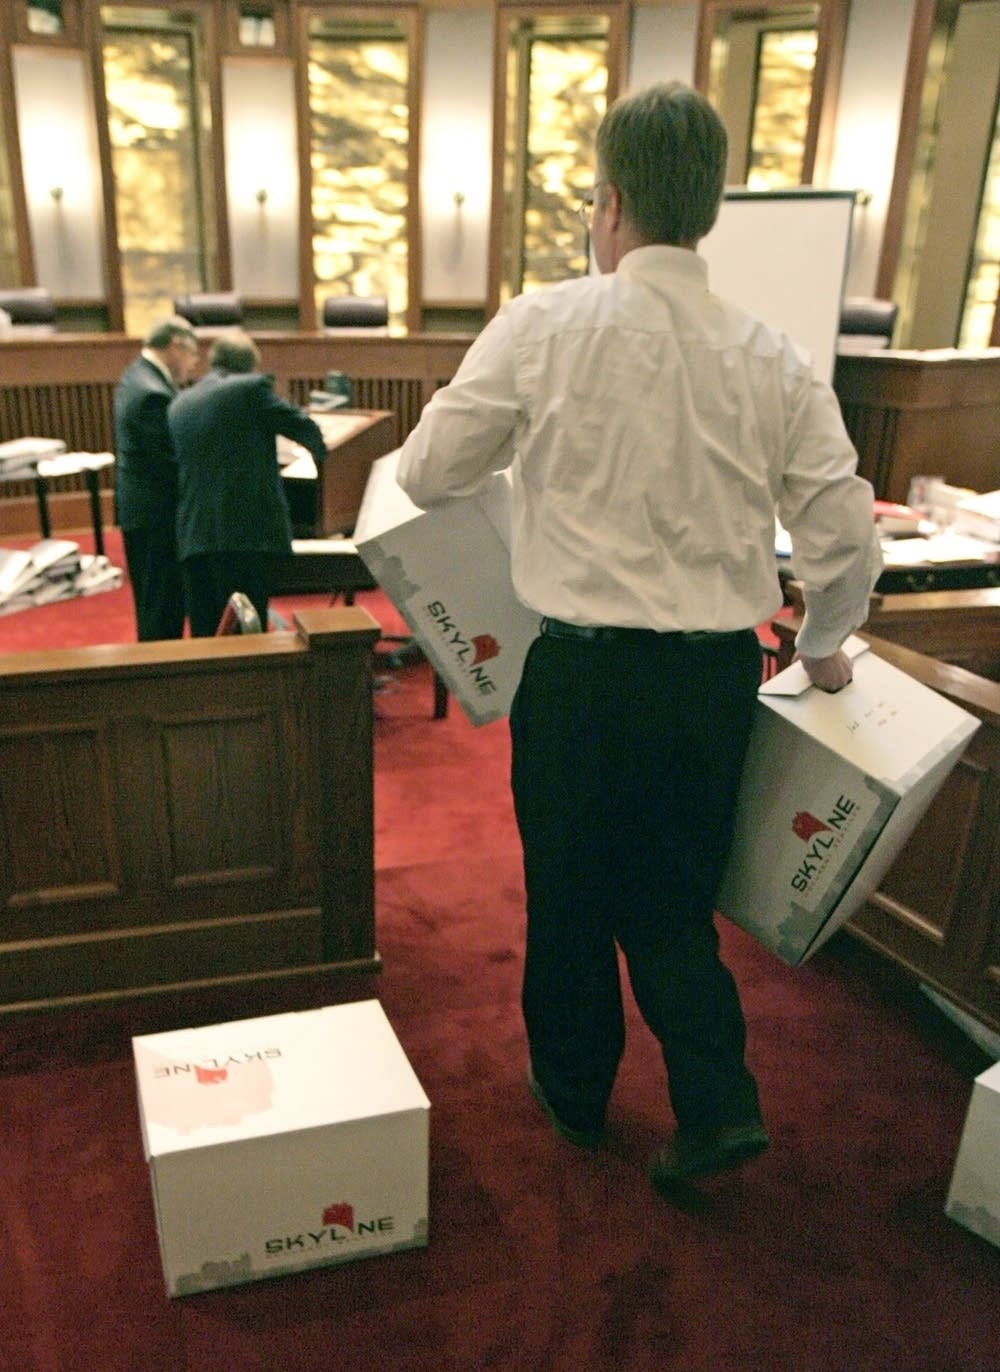 A court employee brings in boxes of exhibits